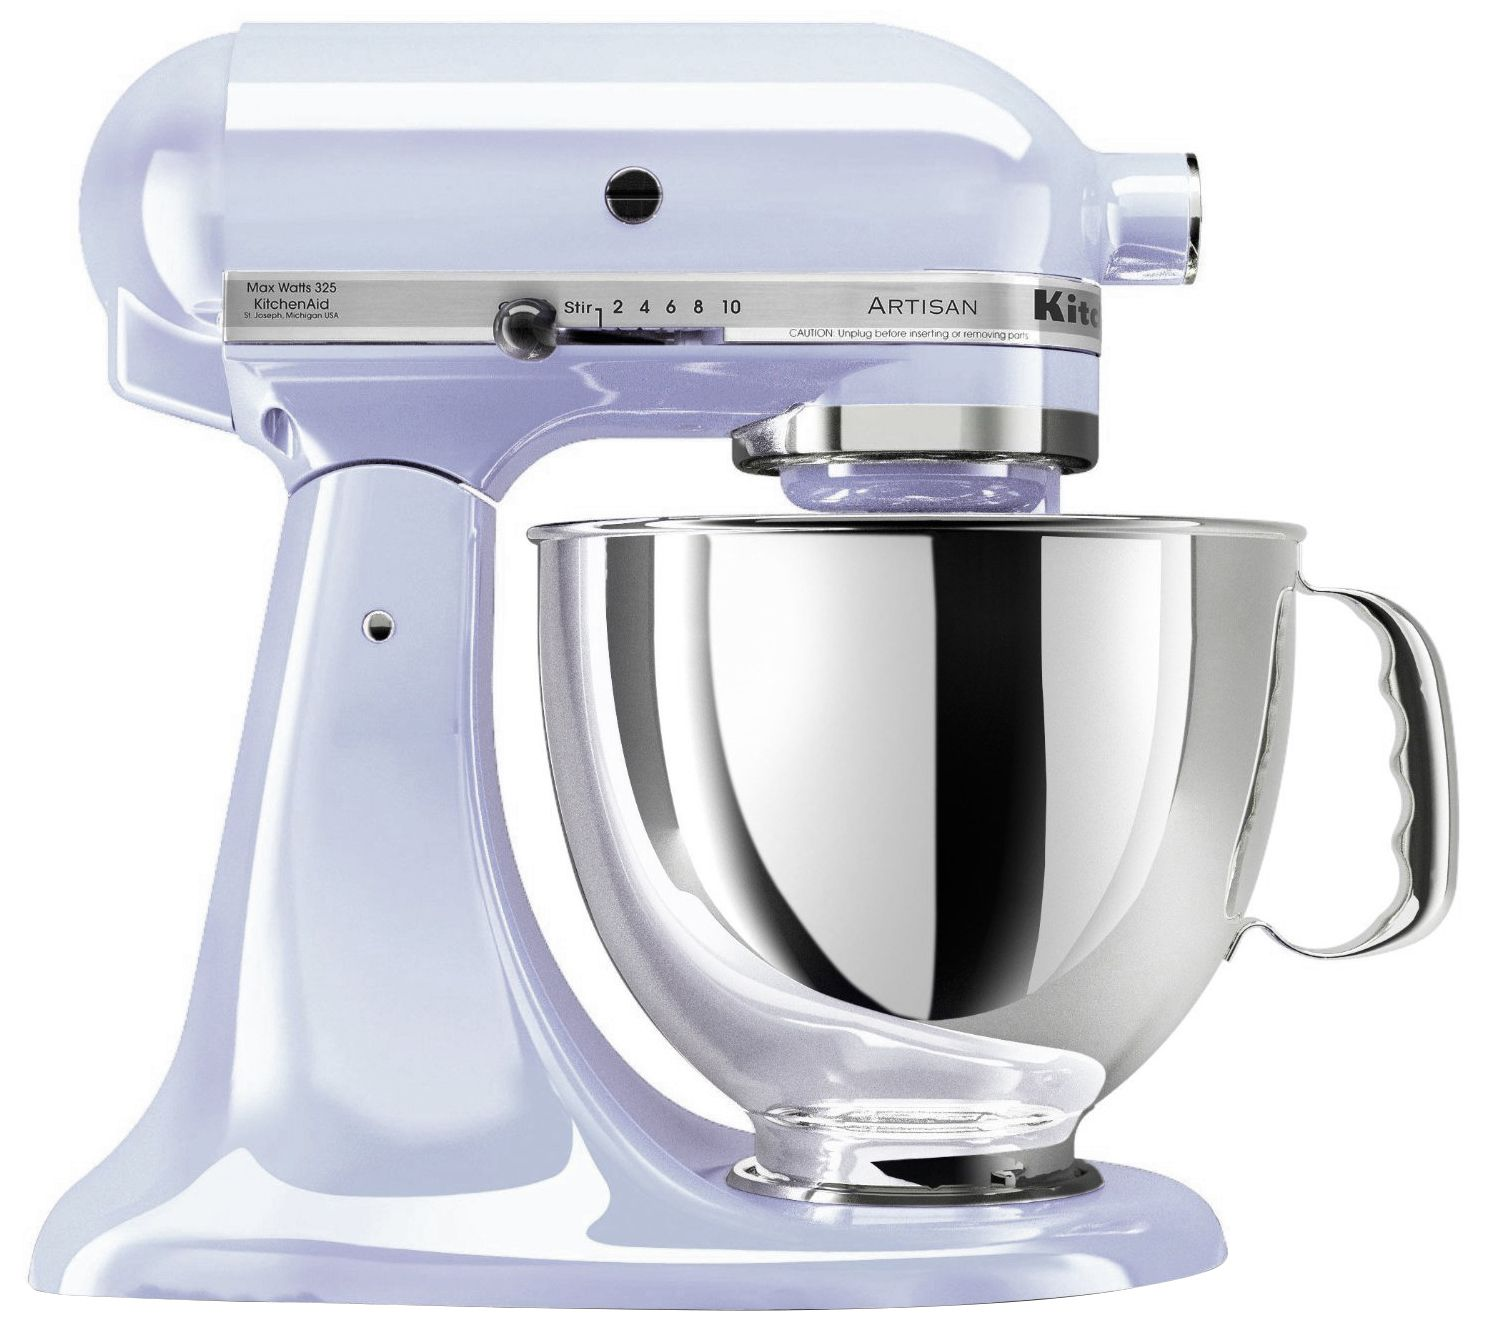 Kitchen Aid kitchenaid artisan 5-qt tilt-head mixer - page 1 — qvc